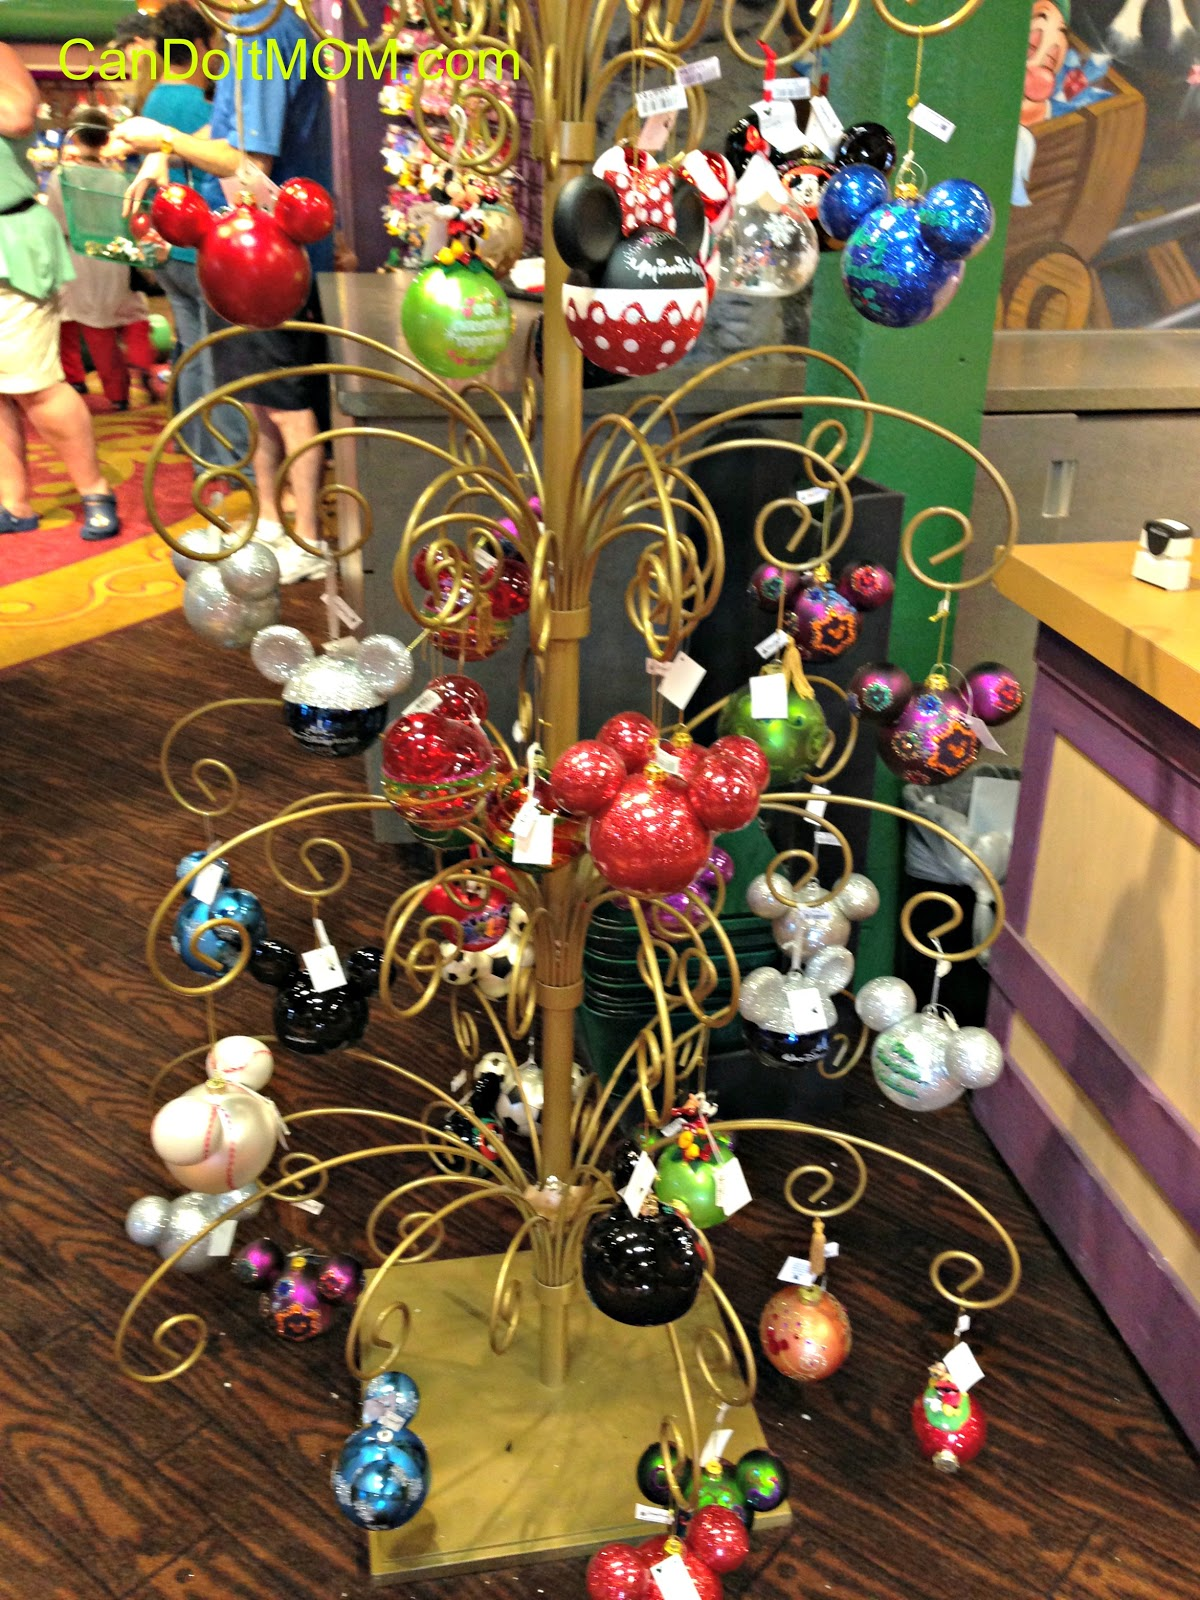 Disney christmas decorations for home - I Usually Take Some Of The Overflow Of Disney Ornaments And Hang Them From The Ceiling Or On Walls Or In The Kids Room